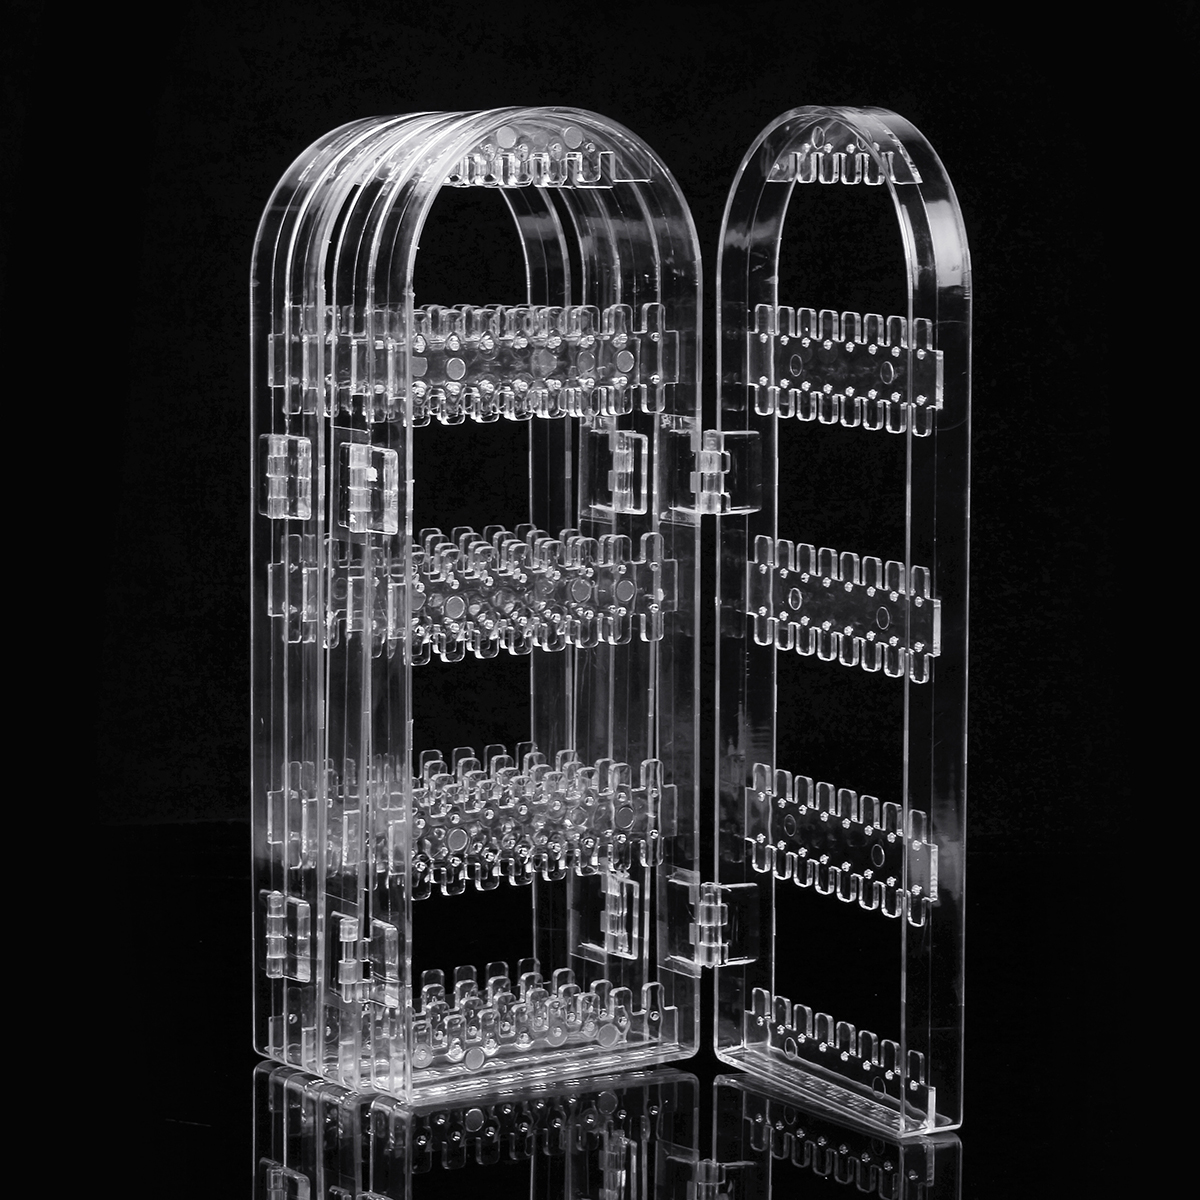 300 Holes Clear Display Rack Stand Organizer Holder for Earrings Studs Necklace Jewelry